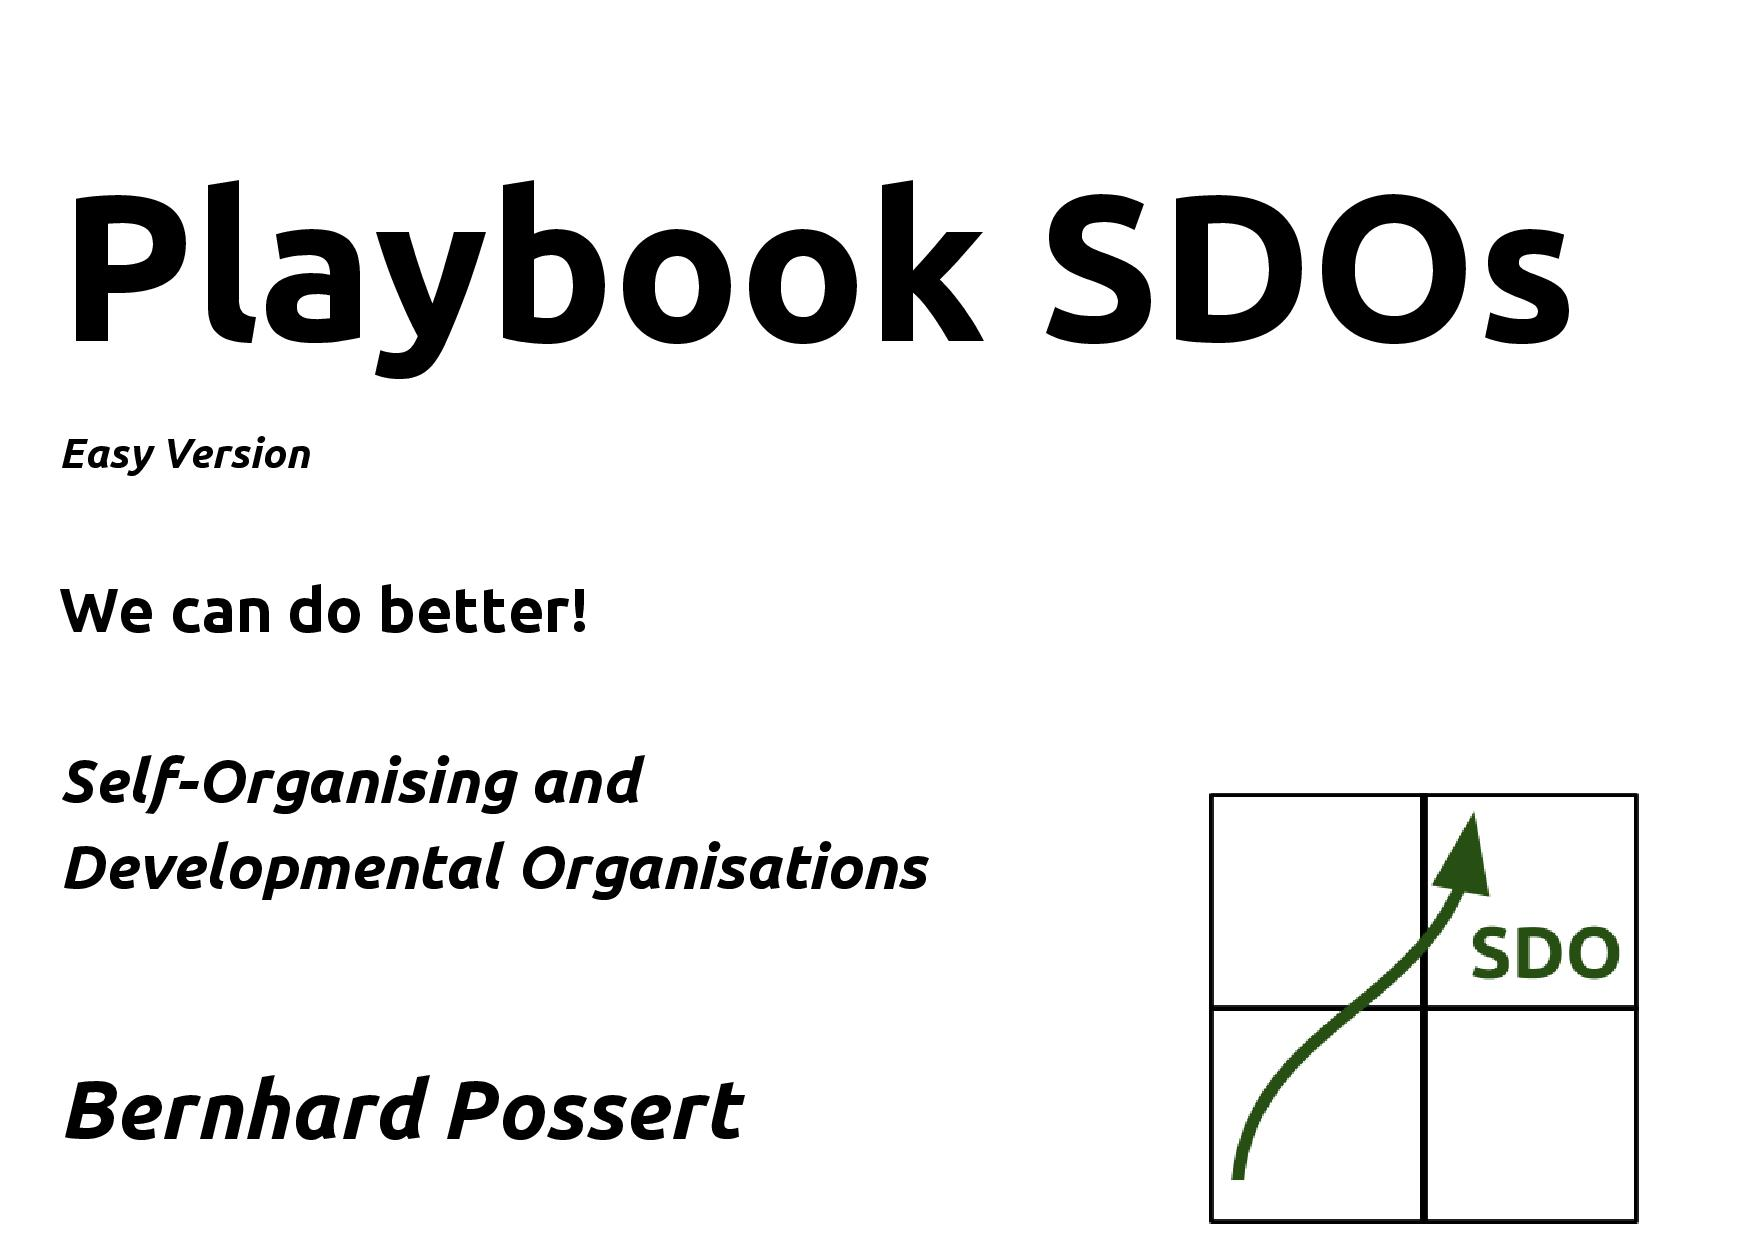 SDOe playbook 181003 cover